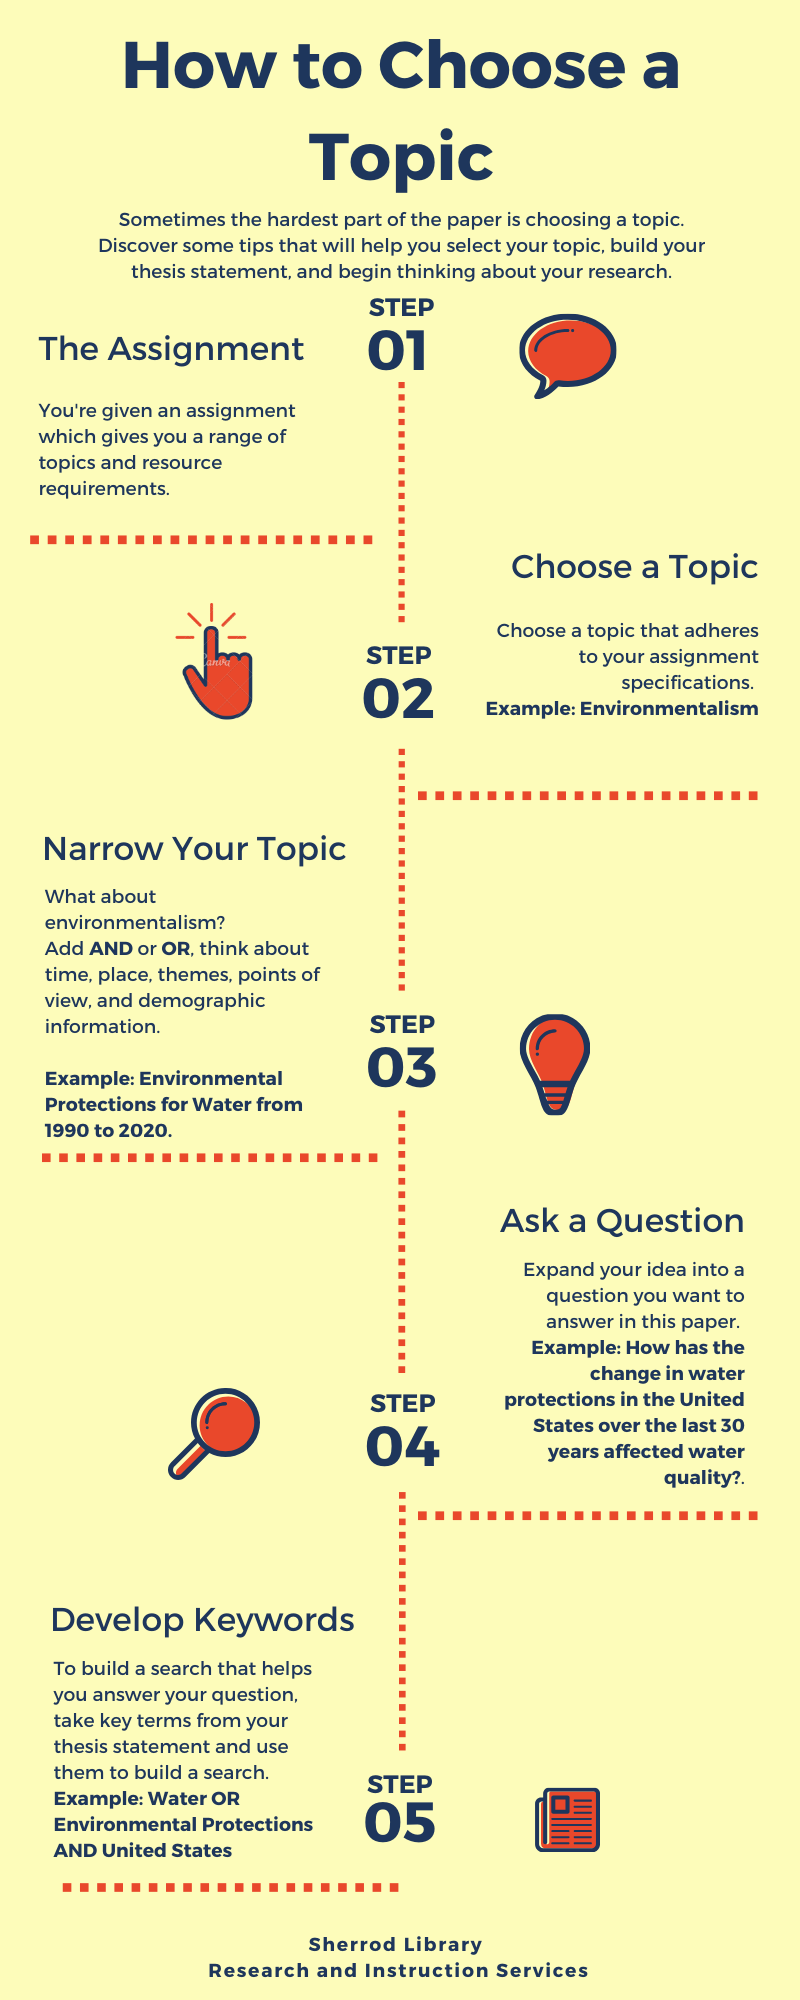 How to Choose a Topic infographic.